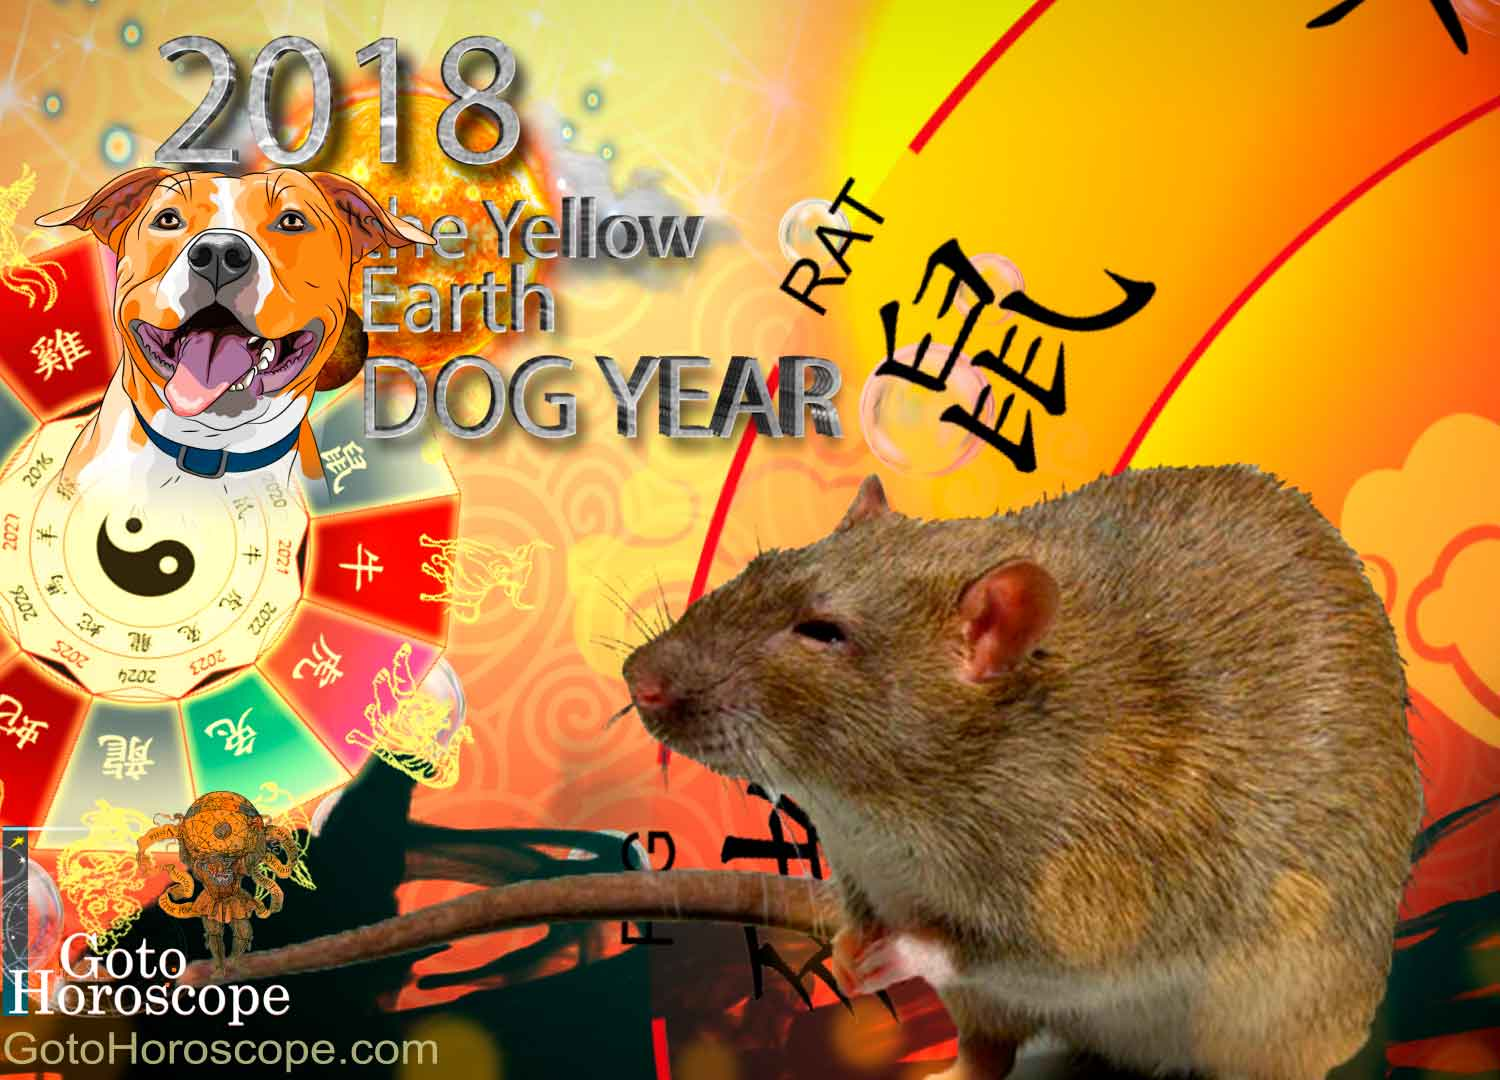 Rat 2018 Horoscope for the Yellow Earth Dog Year